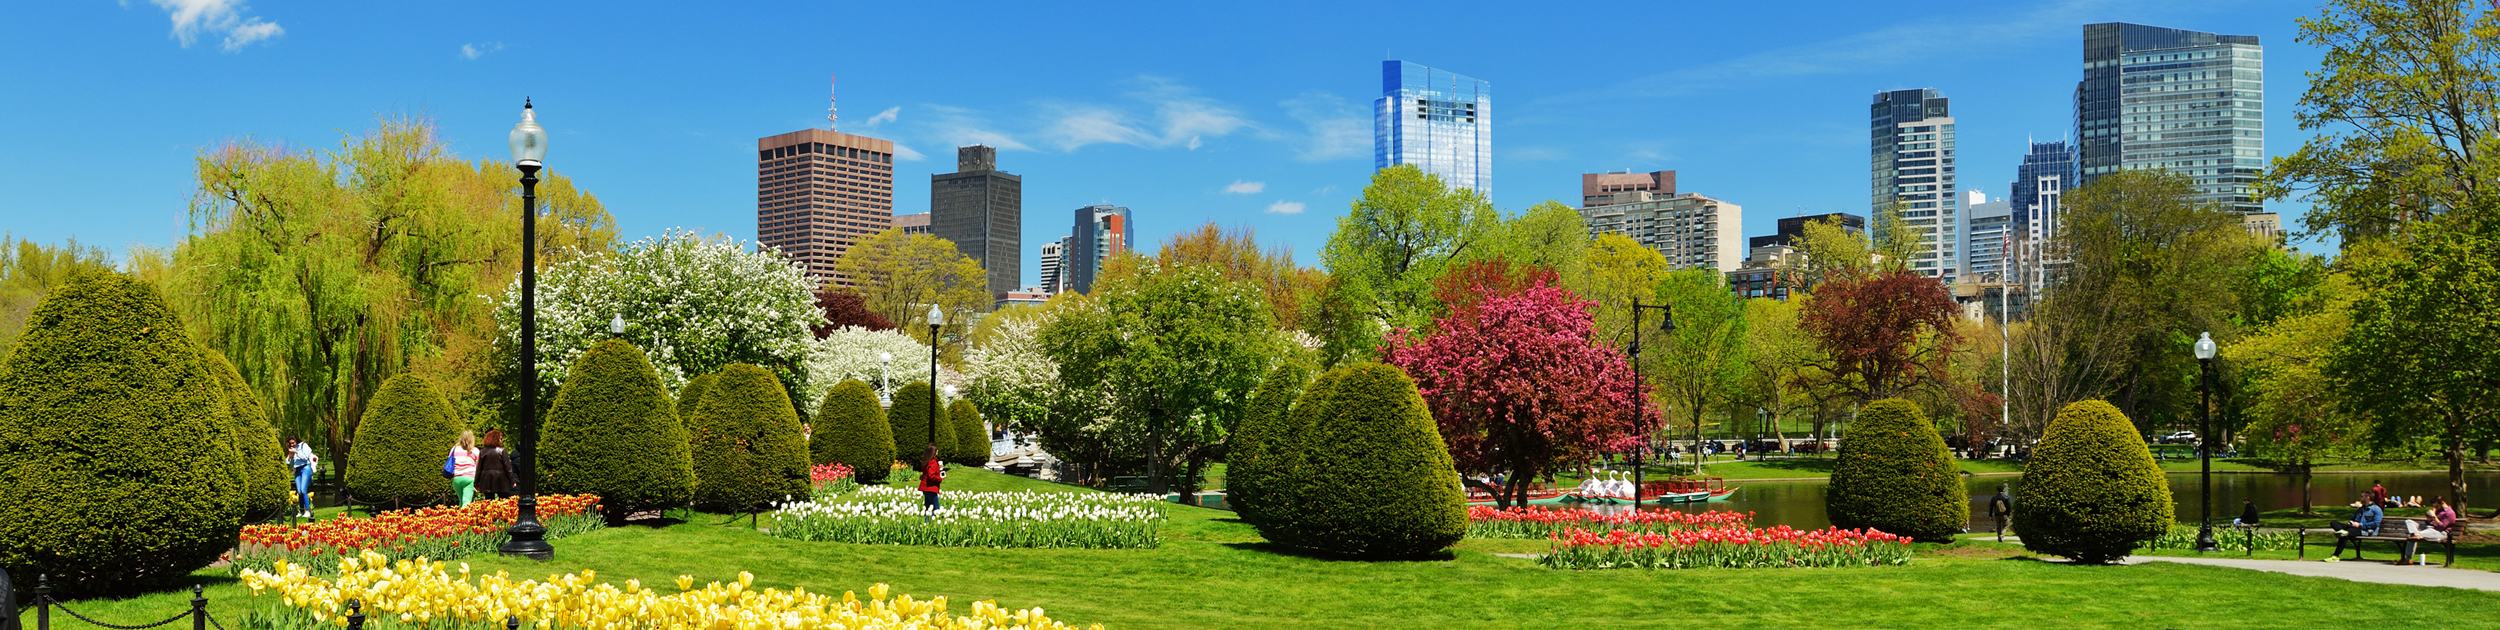 spring image - gorgeous spring flowers and shrubs with Boston skyline in the background